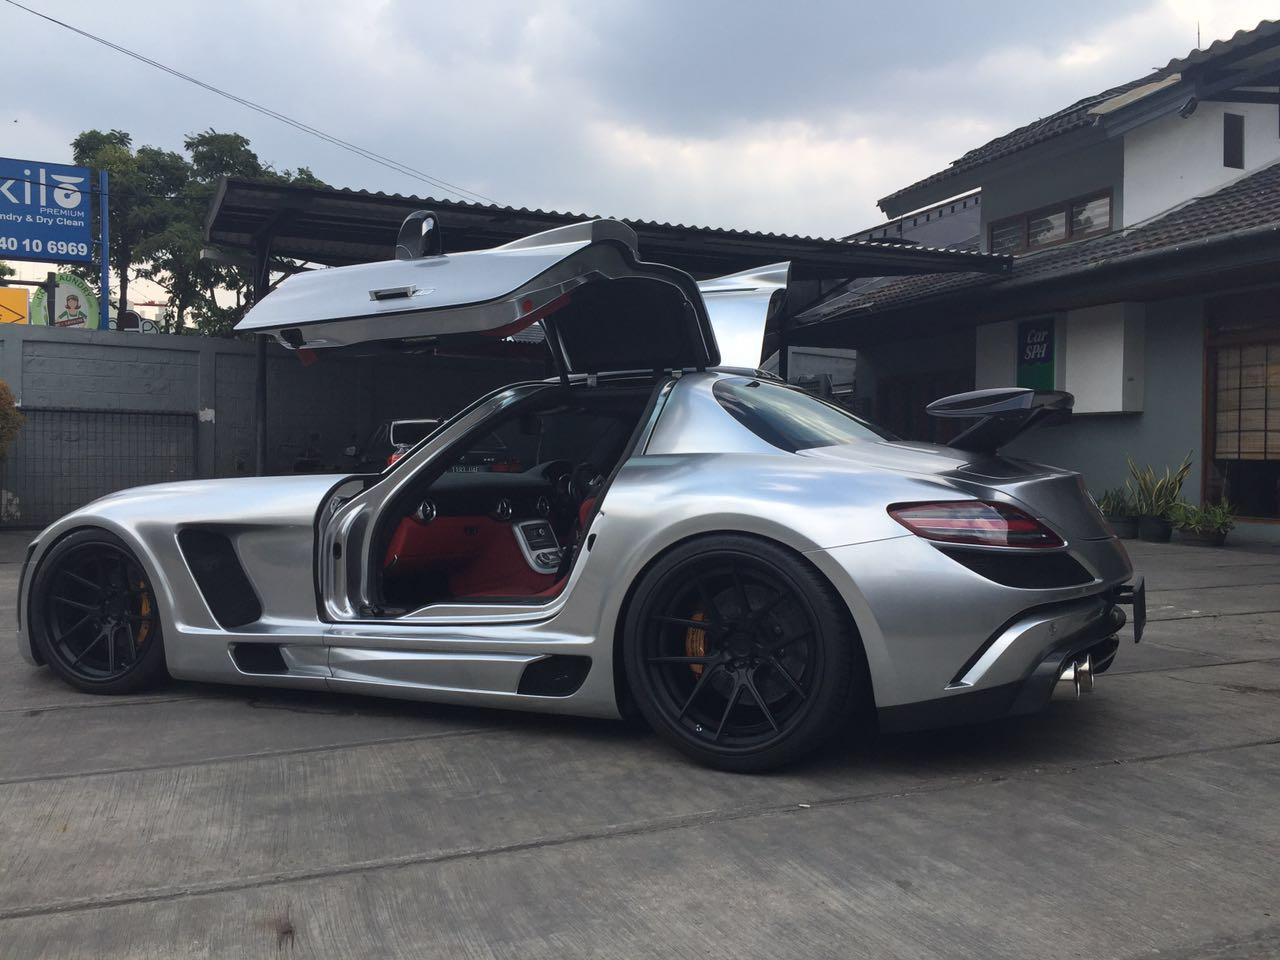 My Cousin S Sls Drag Car With Real Chrome Paint From Indonesia